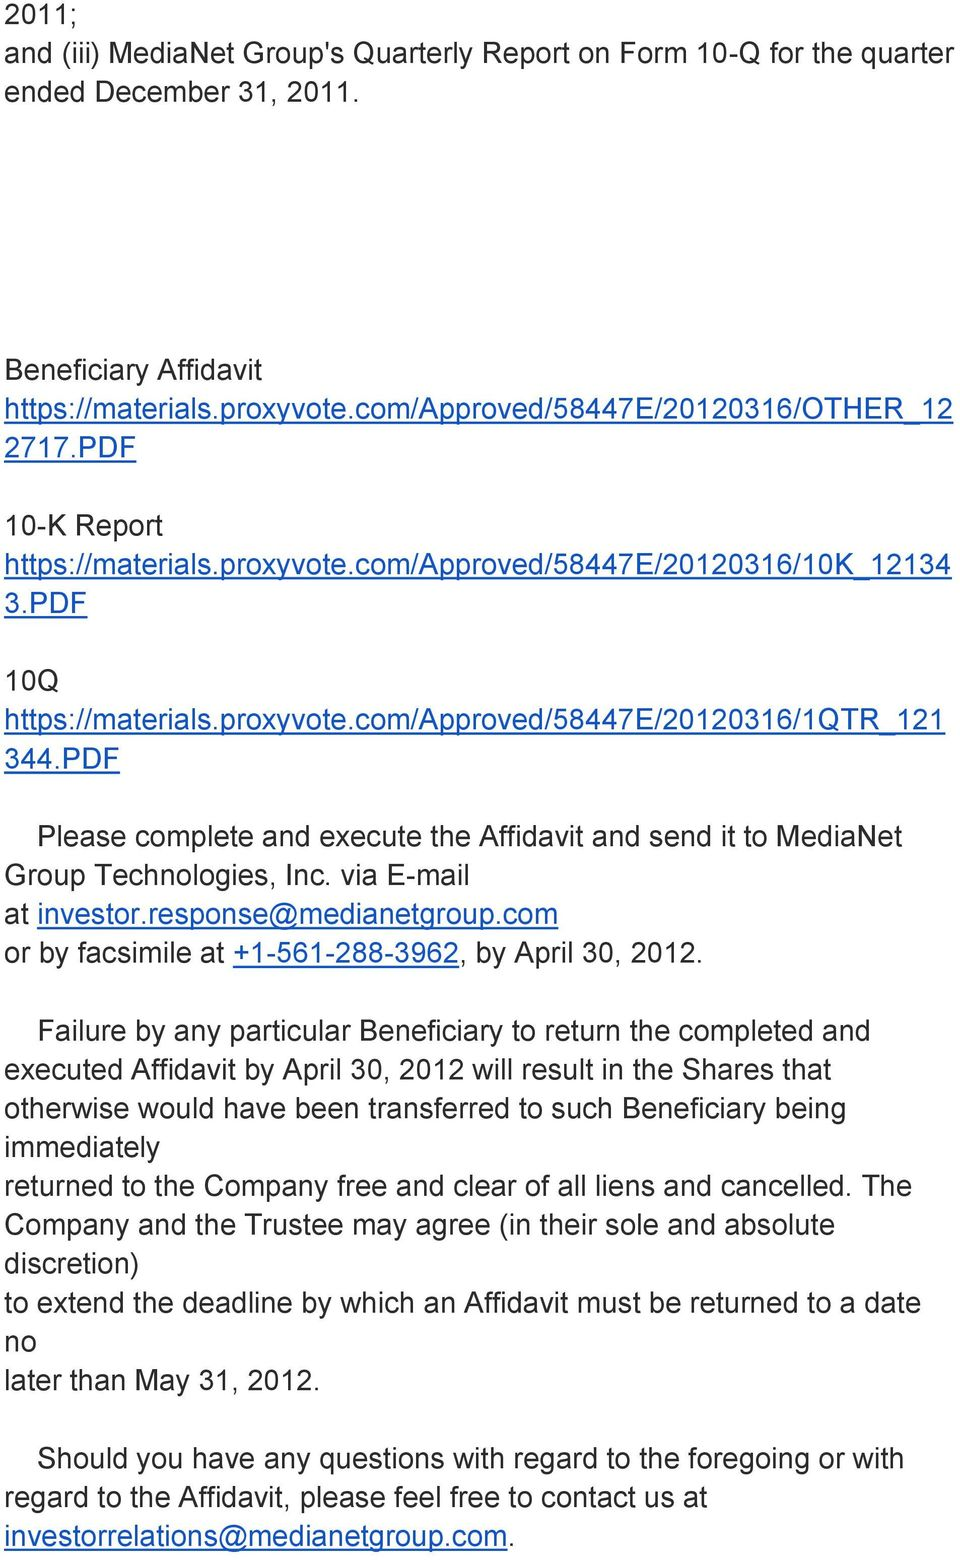 PDF Please complete and execute the Affidavit and send it to MediaNet Group Technologies, Inc. via E-mail at investor.response@medianetgroup.com or by facsimile at +1-561-288-3962, by April 30, 2012.